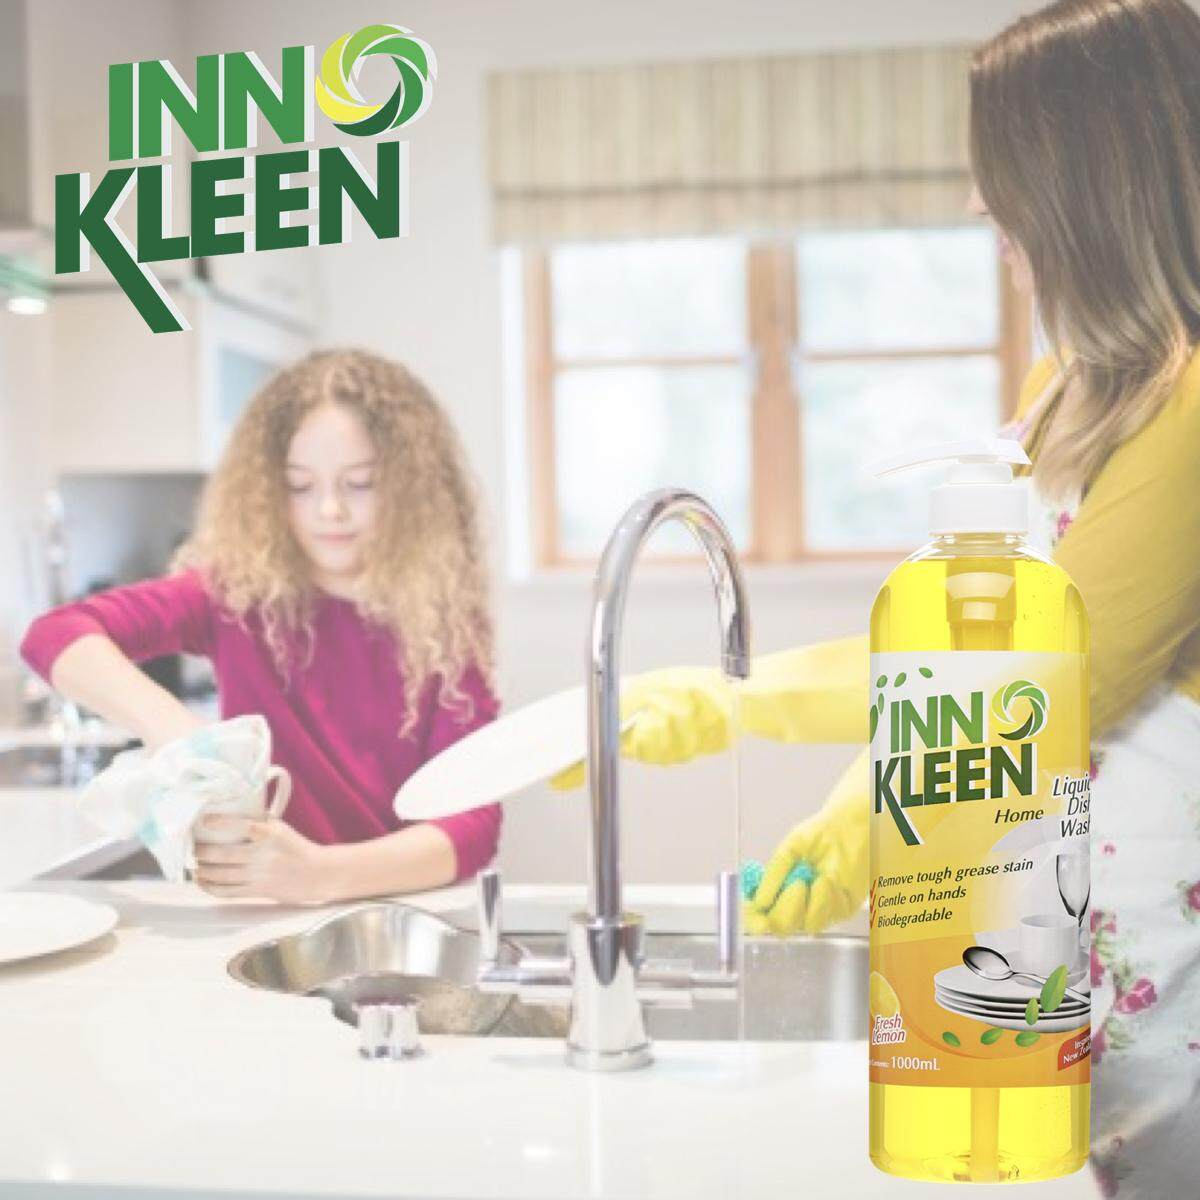 [VALUE PACK] Set of 2 INNOKLEEN HOME Liquid Dish Wash (Fresh Lemon) Remove Tough Grease Stain 1L